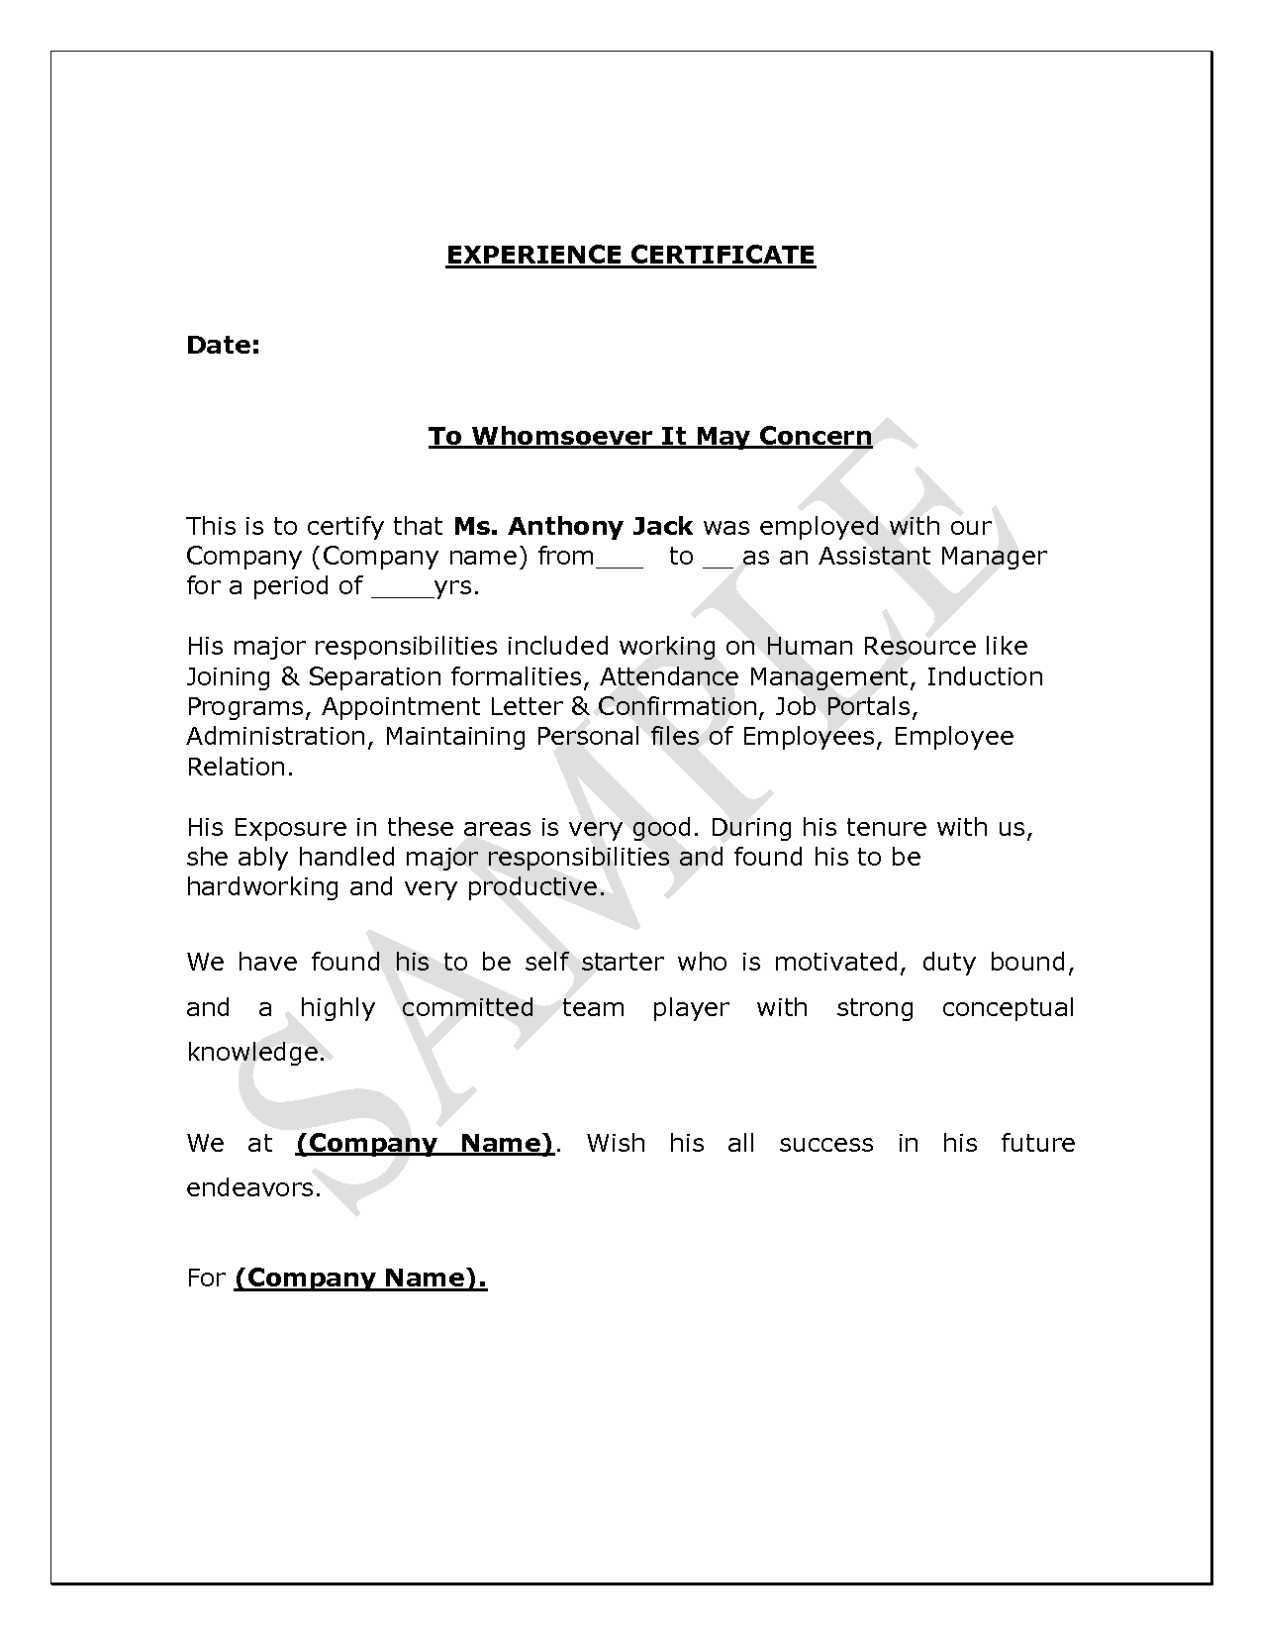 job certificate format mission statement outline prompt